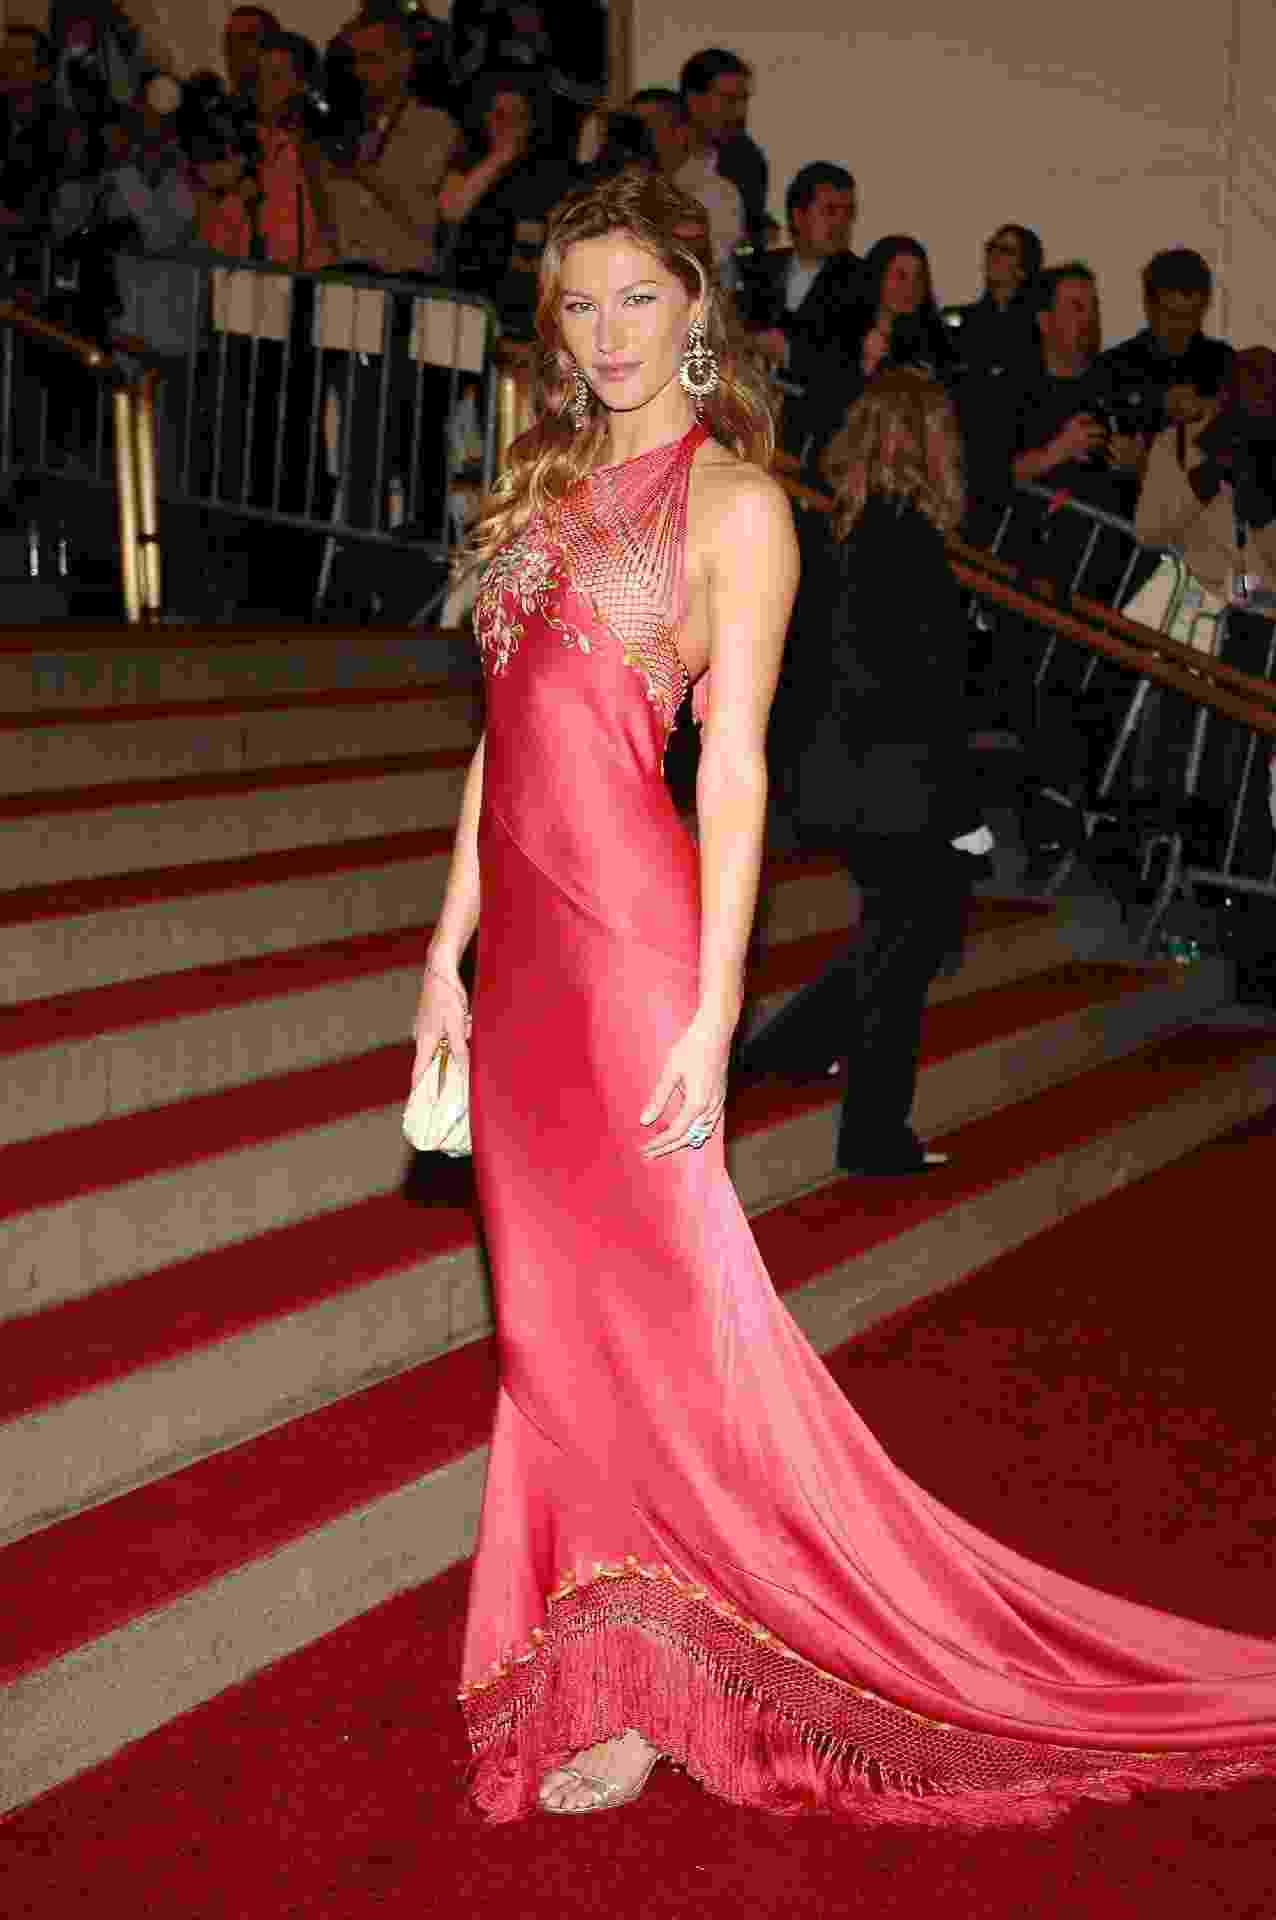 Gisele Bündchen no MET Gala 2006 - Getty Images